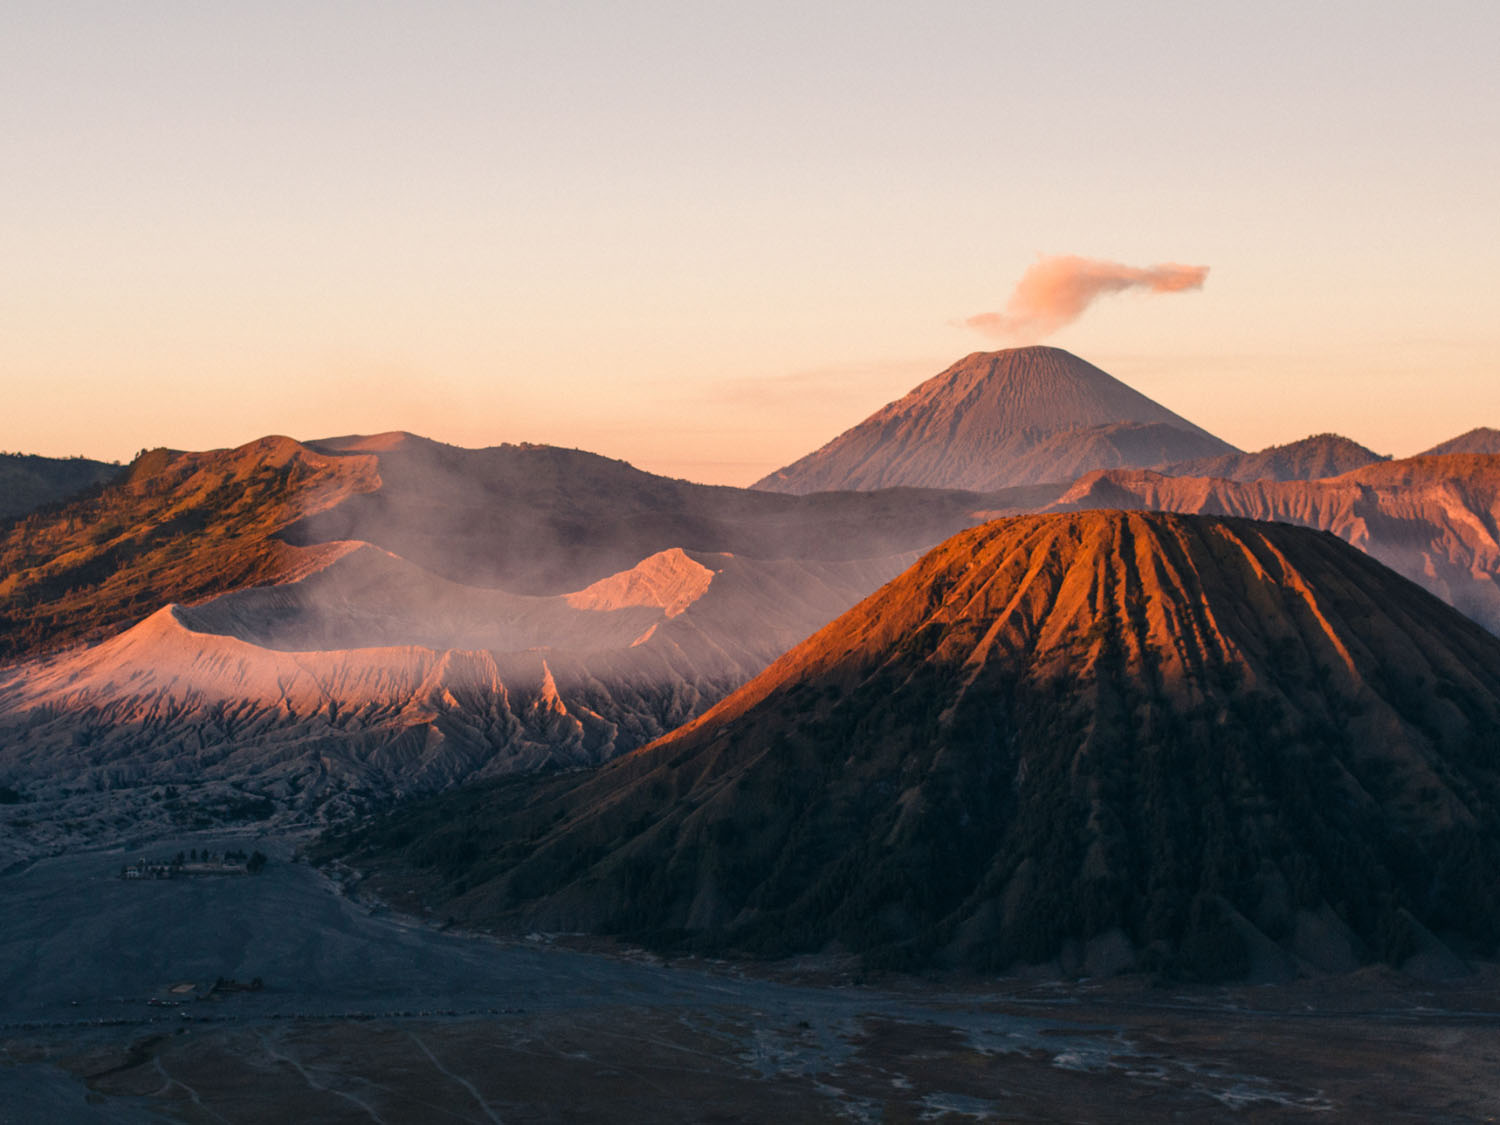 volcano at sunset - 7 Tips to Make Travel Photography Interesting Again